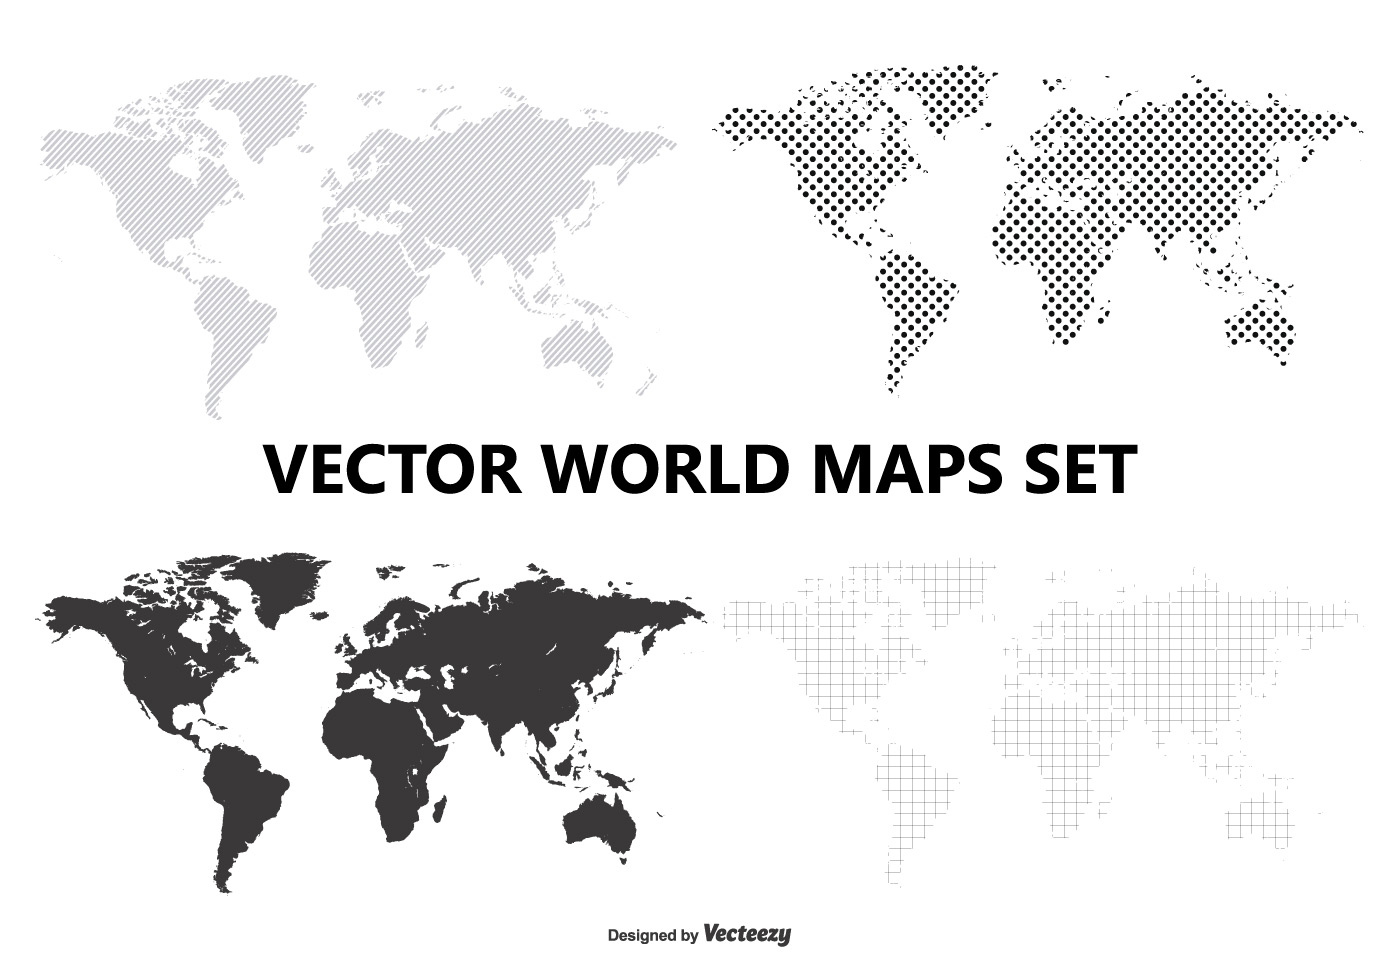 Vector world map set download free vector art stock graphics images gumiabroncs Image collections